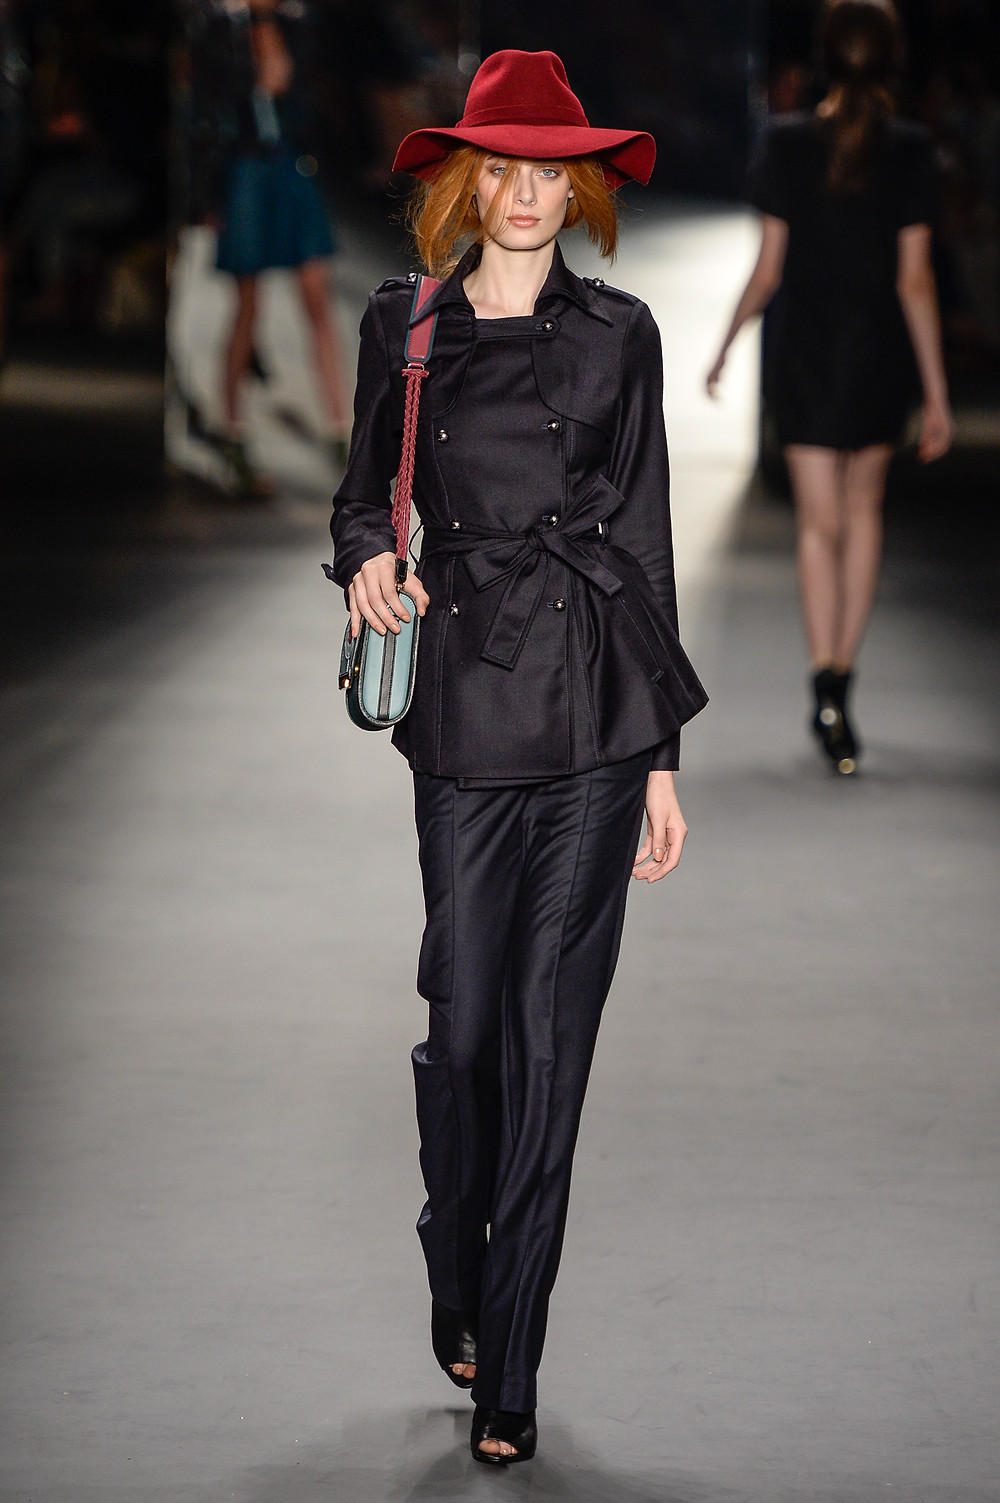 lilly-sarti-spfw-inverno2015-03.jpg